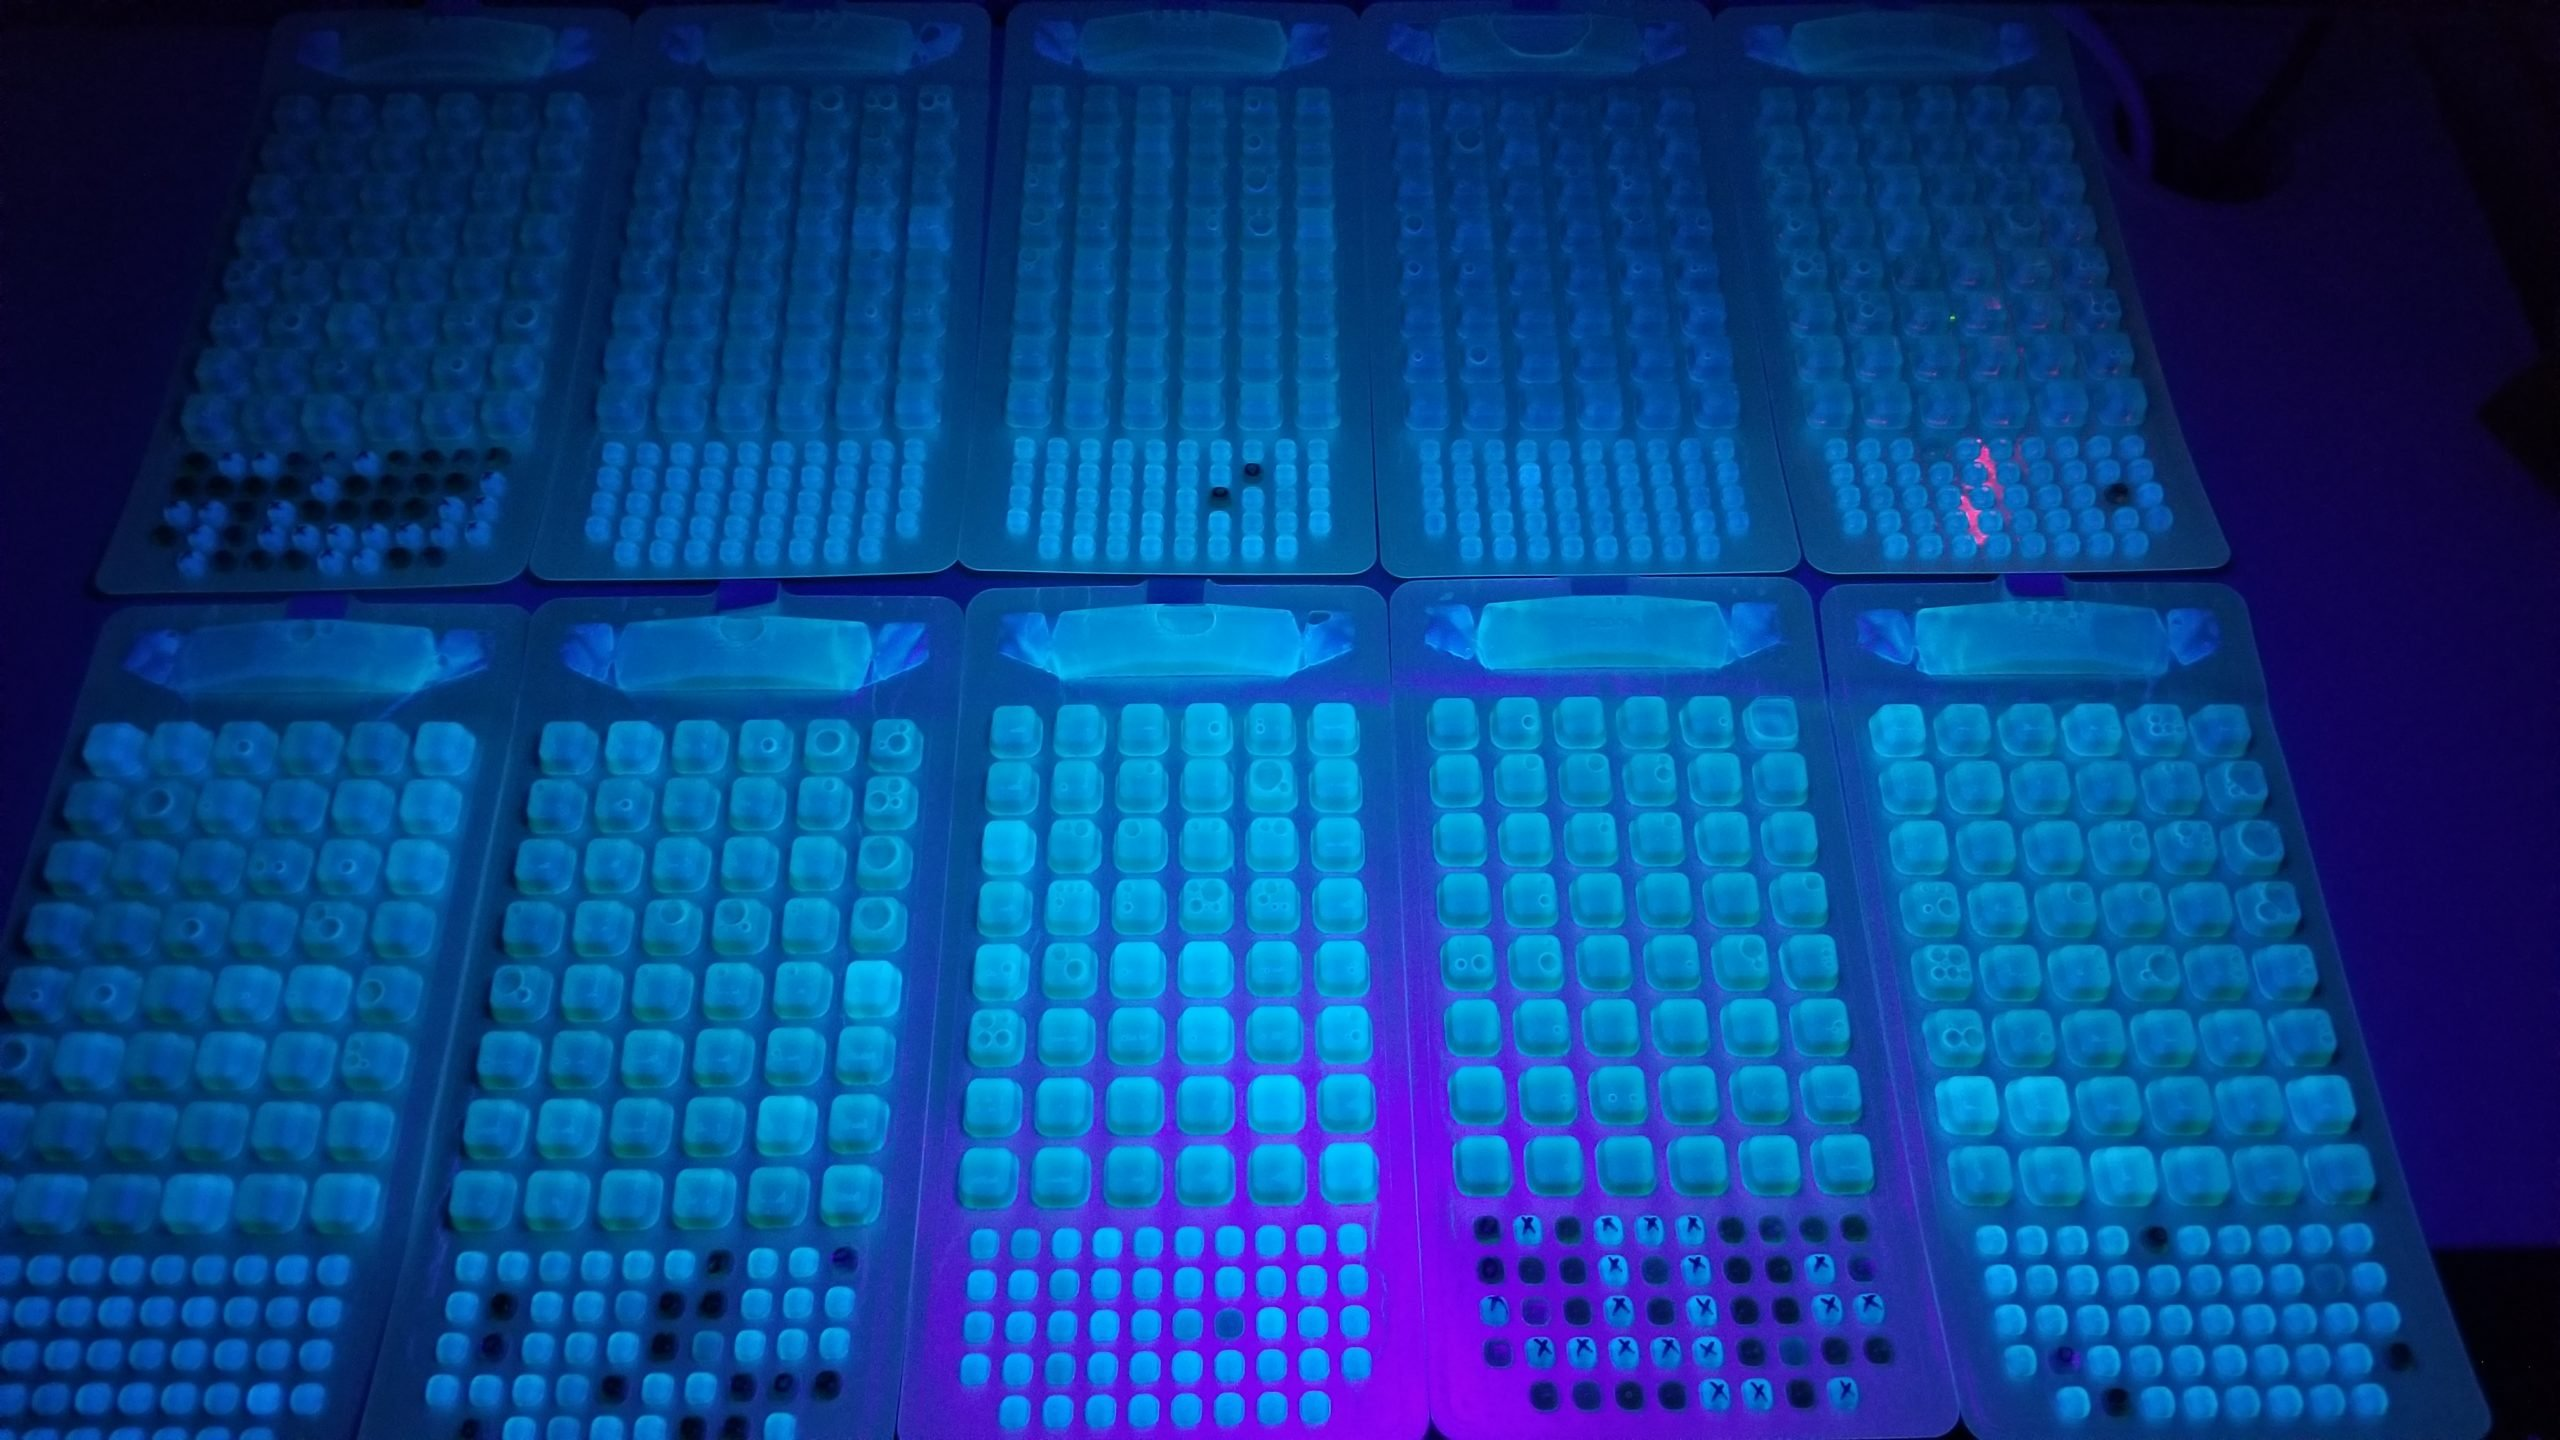 Florescent lab samples under UV light. There are rows and rows of bright green dots surround by shades of blue and purple.